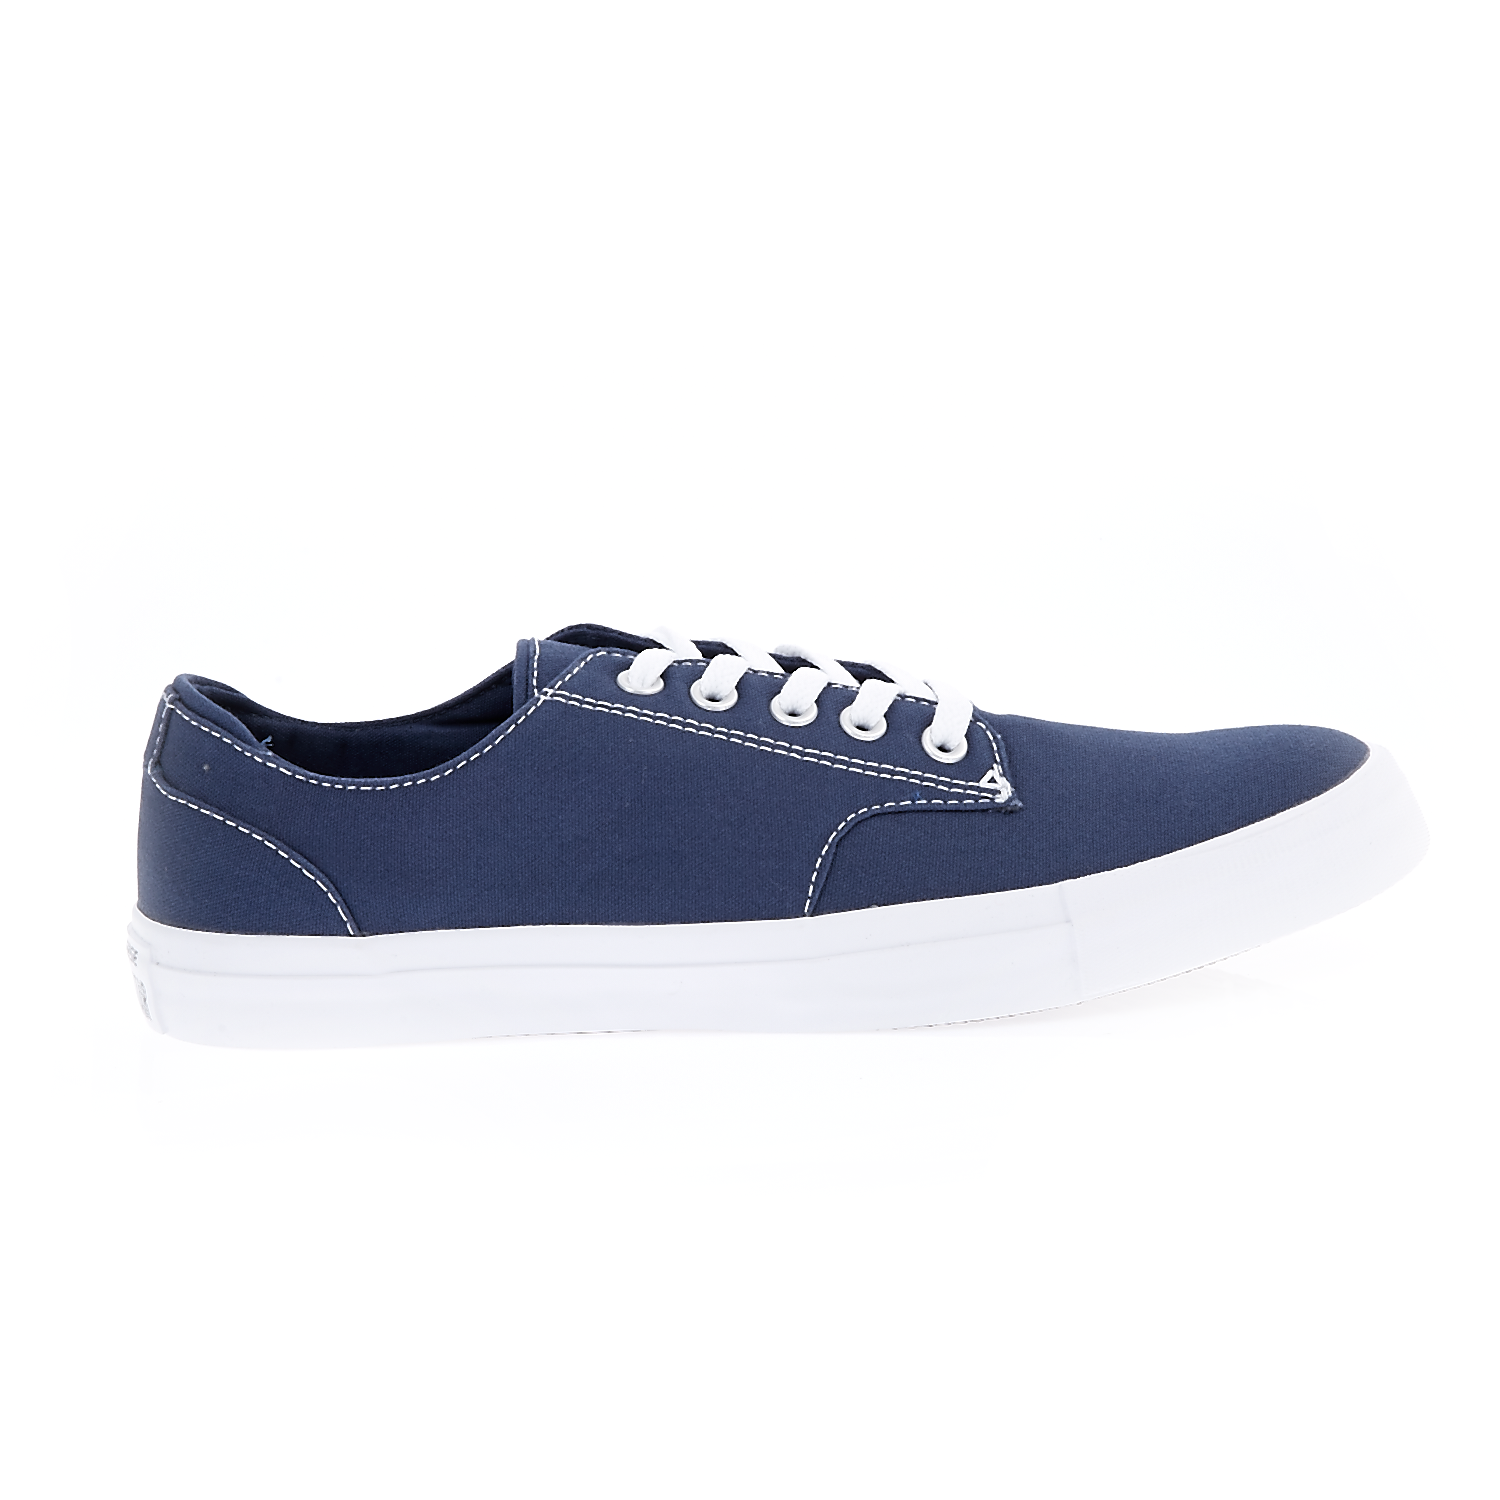 CONVERSE - Unisex παπούτσια Chuck Taylor All Star Derby Ox μπλε ανδρικά παπούτσια sneakers